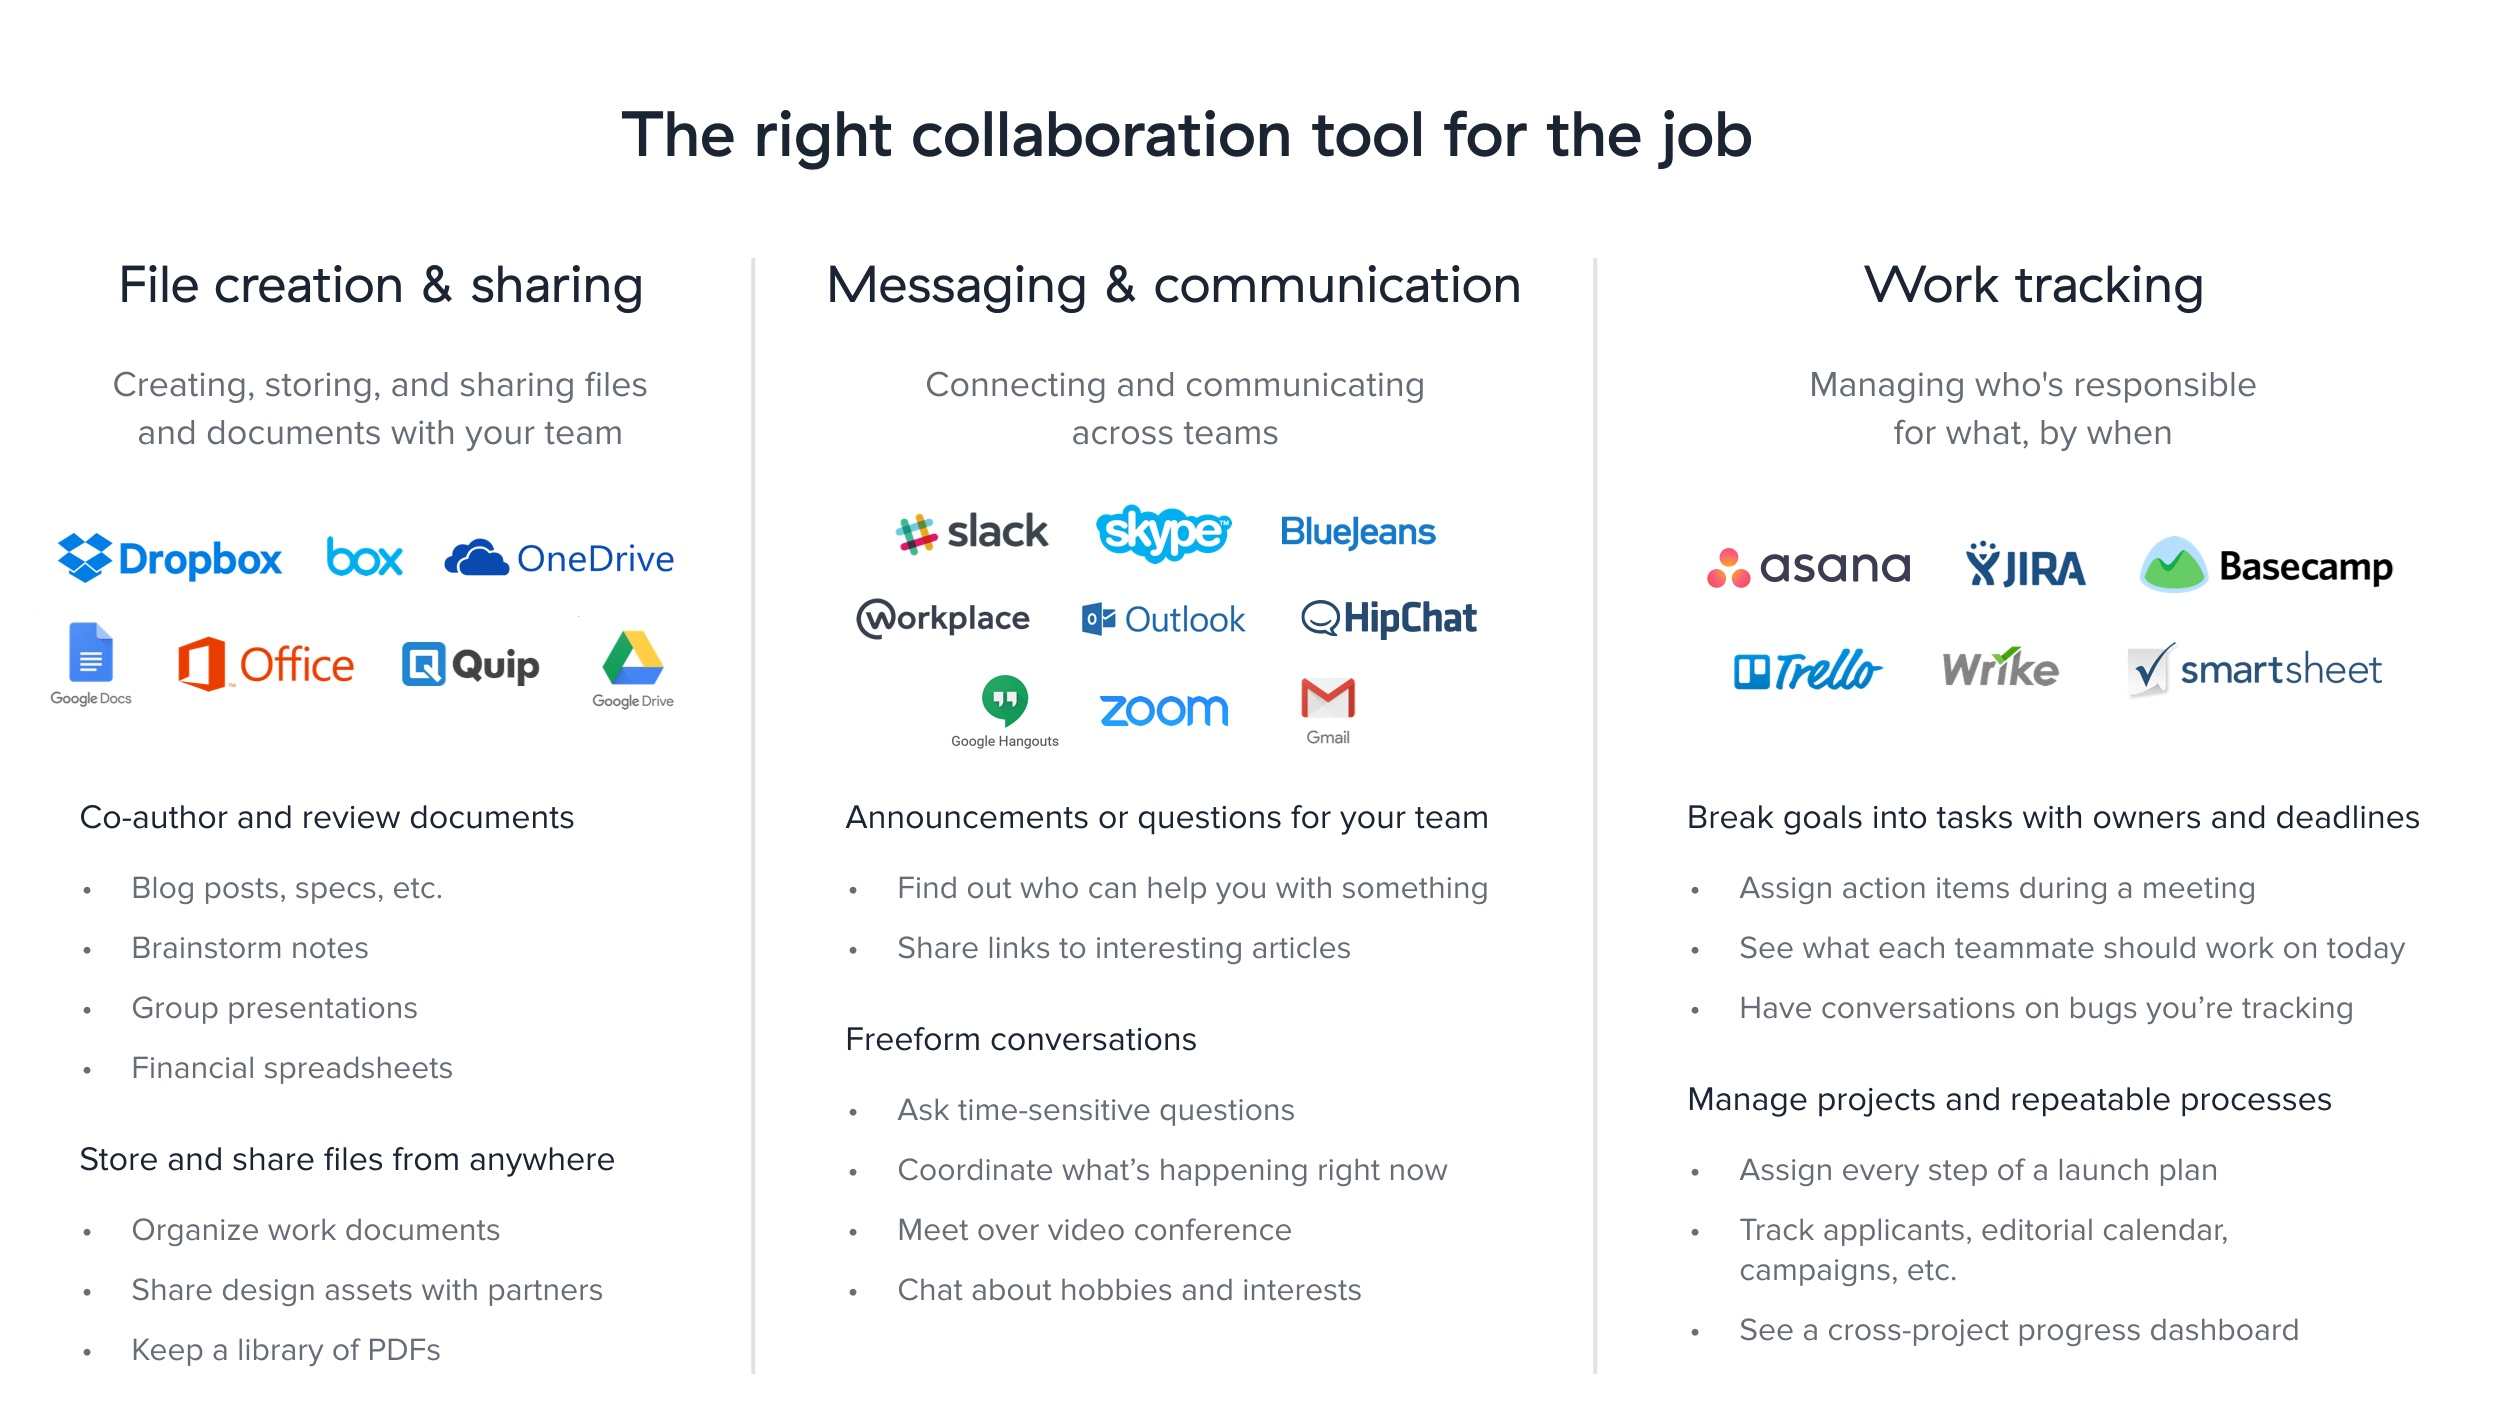 Where Asana fits in with other collaboration tools like Dropbox, Slack, Gmail, JIRA, Basecamp, and more